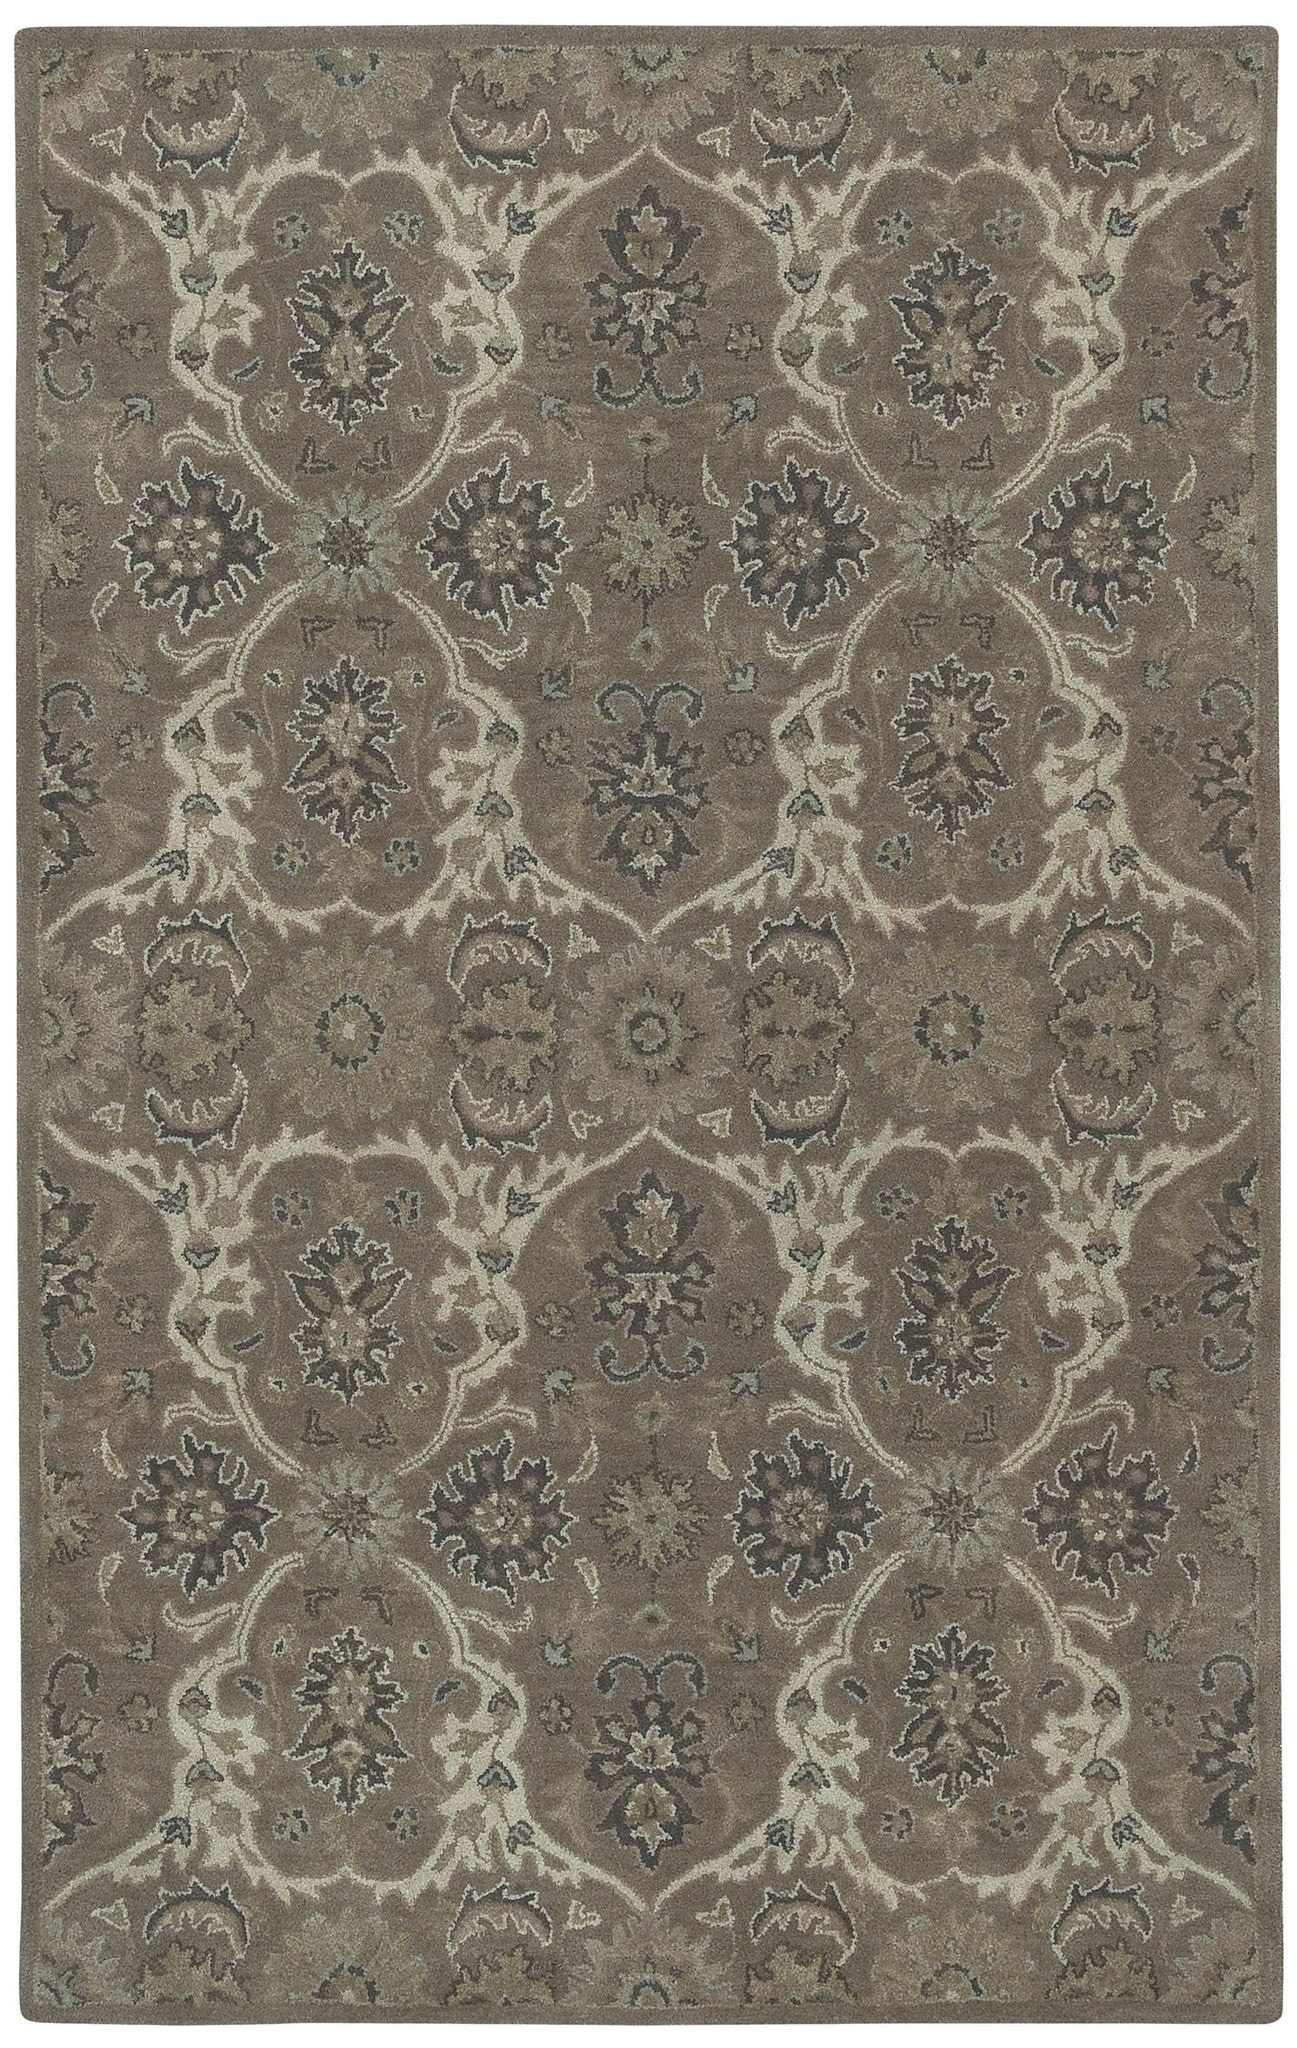 Capel Hamlet 3200 Brown 700 Area Rug main image